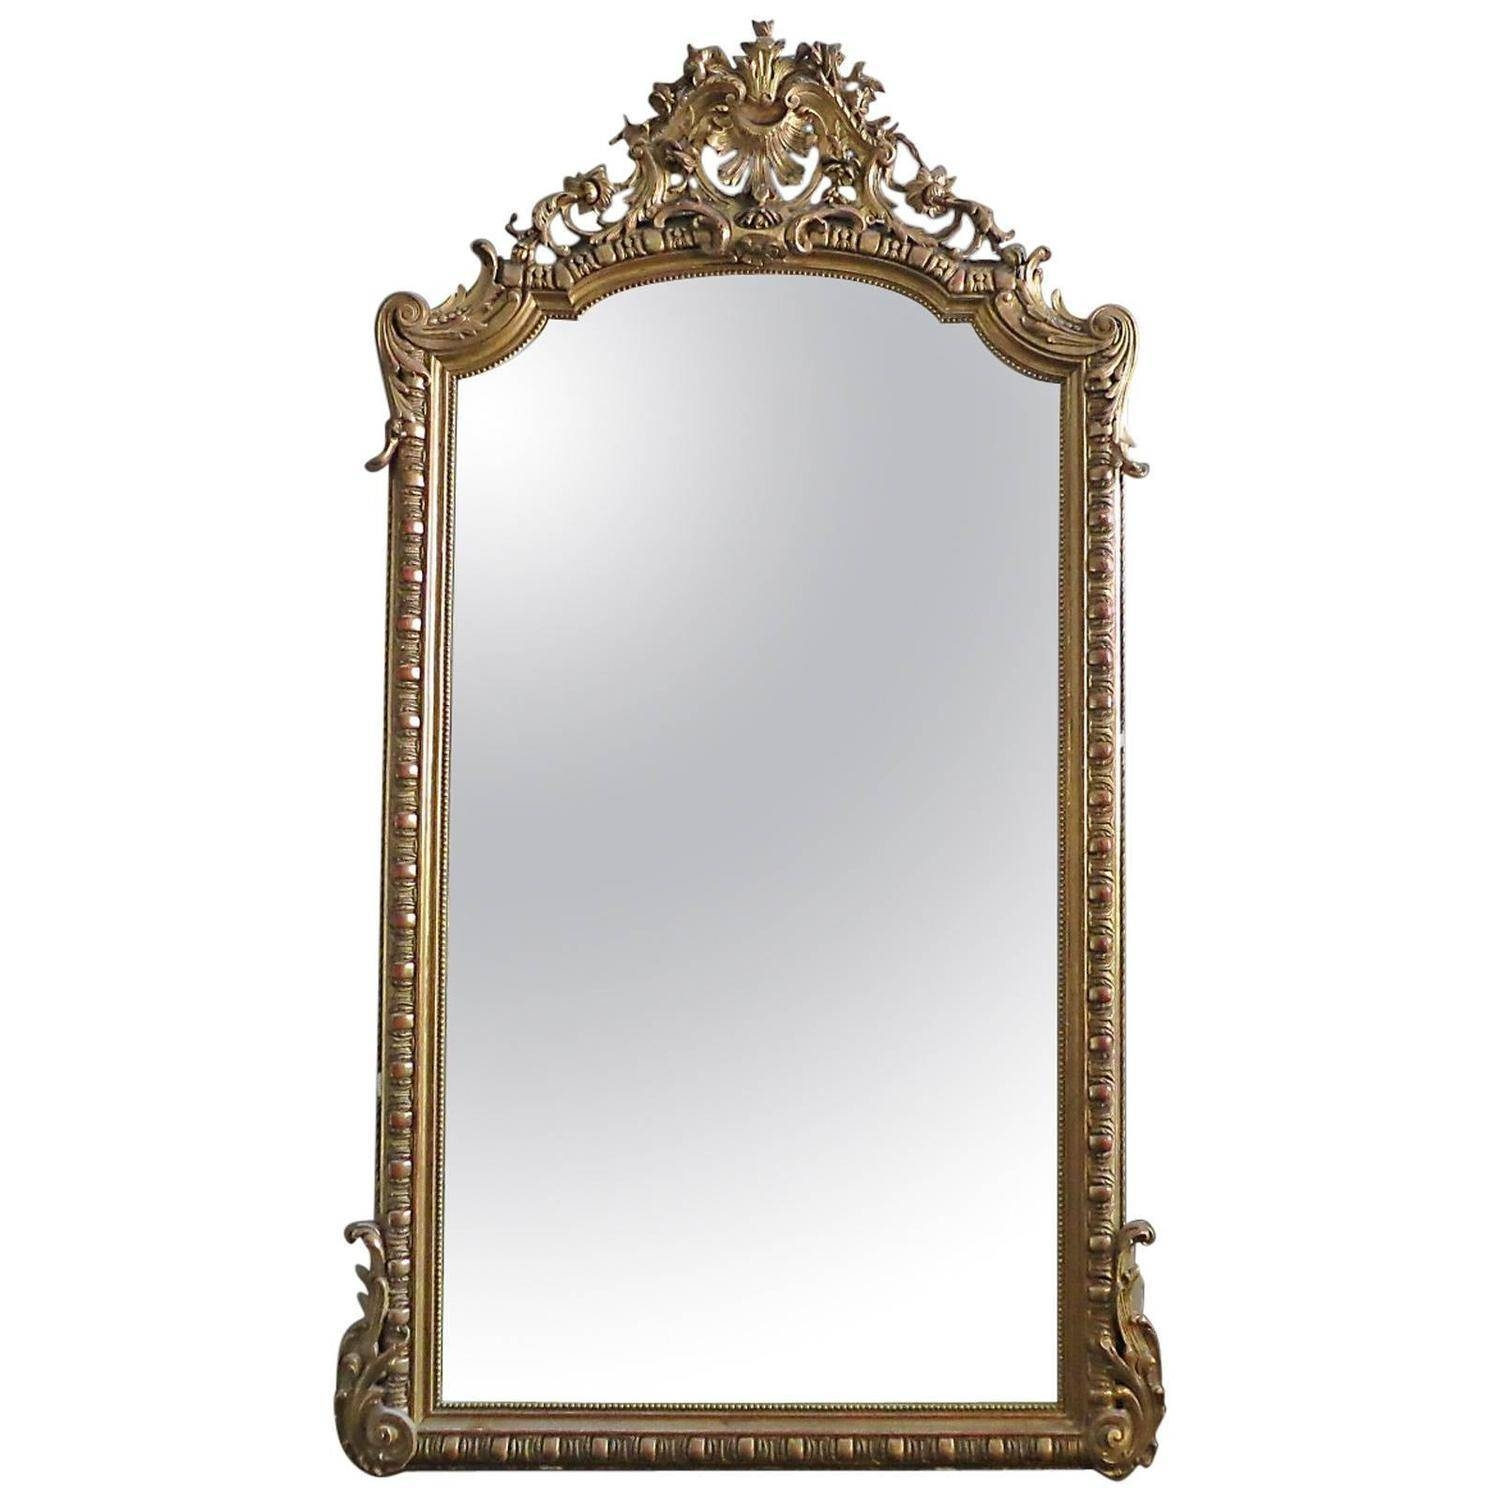 Mirror : Antique Gold Mirrors Bewitch Antique Gold Wall Mirrors Within Gold Mirrors (View 6 of 15)